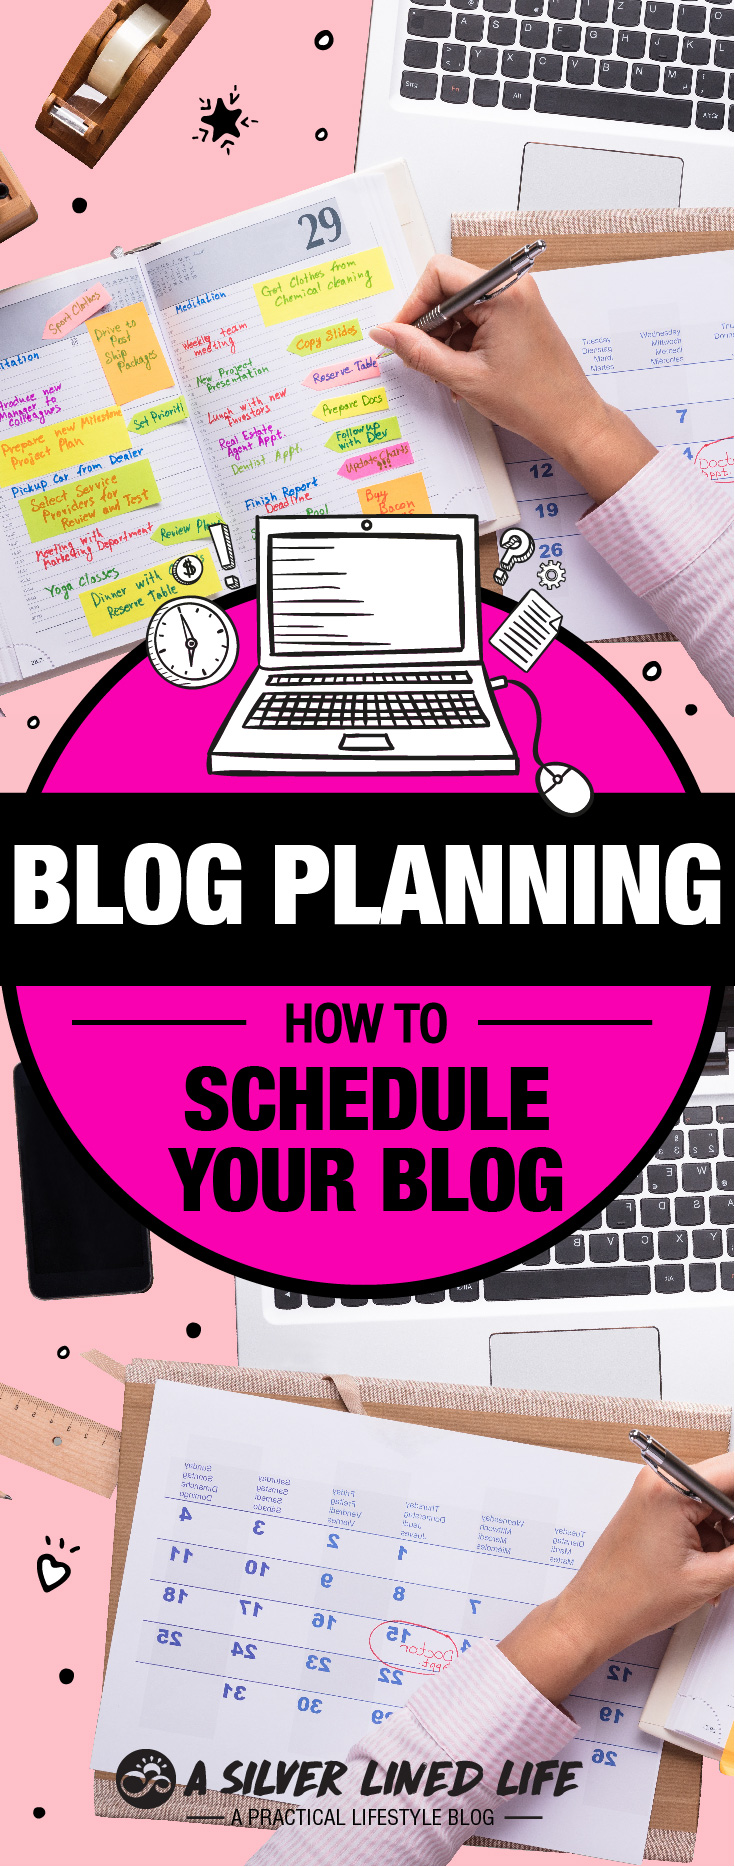 Blog Planning 101: How To Schedule Your Blog - For beginners to advanced bloggers including ideas, a calendar, planner, worksheet and an awesome template. When starting a blog we design it with many ideas and great inspiration but often overlook a blog planner or blog schedule. If your blogging for money, lifestyle, have great topics or posts, you need a plan with a template, daily routines, weekly goals, a calendar, organized posts and ideas as well as structured social media. This website has a spreadsheet link, product and tools that will allow you to track and manage your blog. #SLL